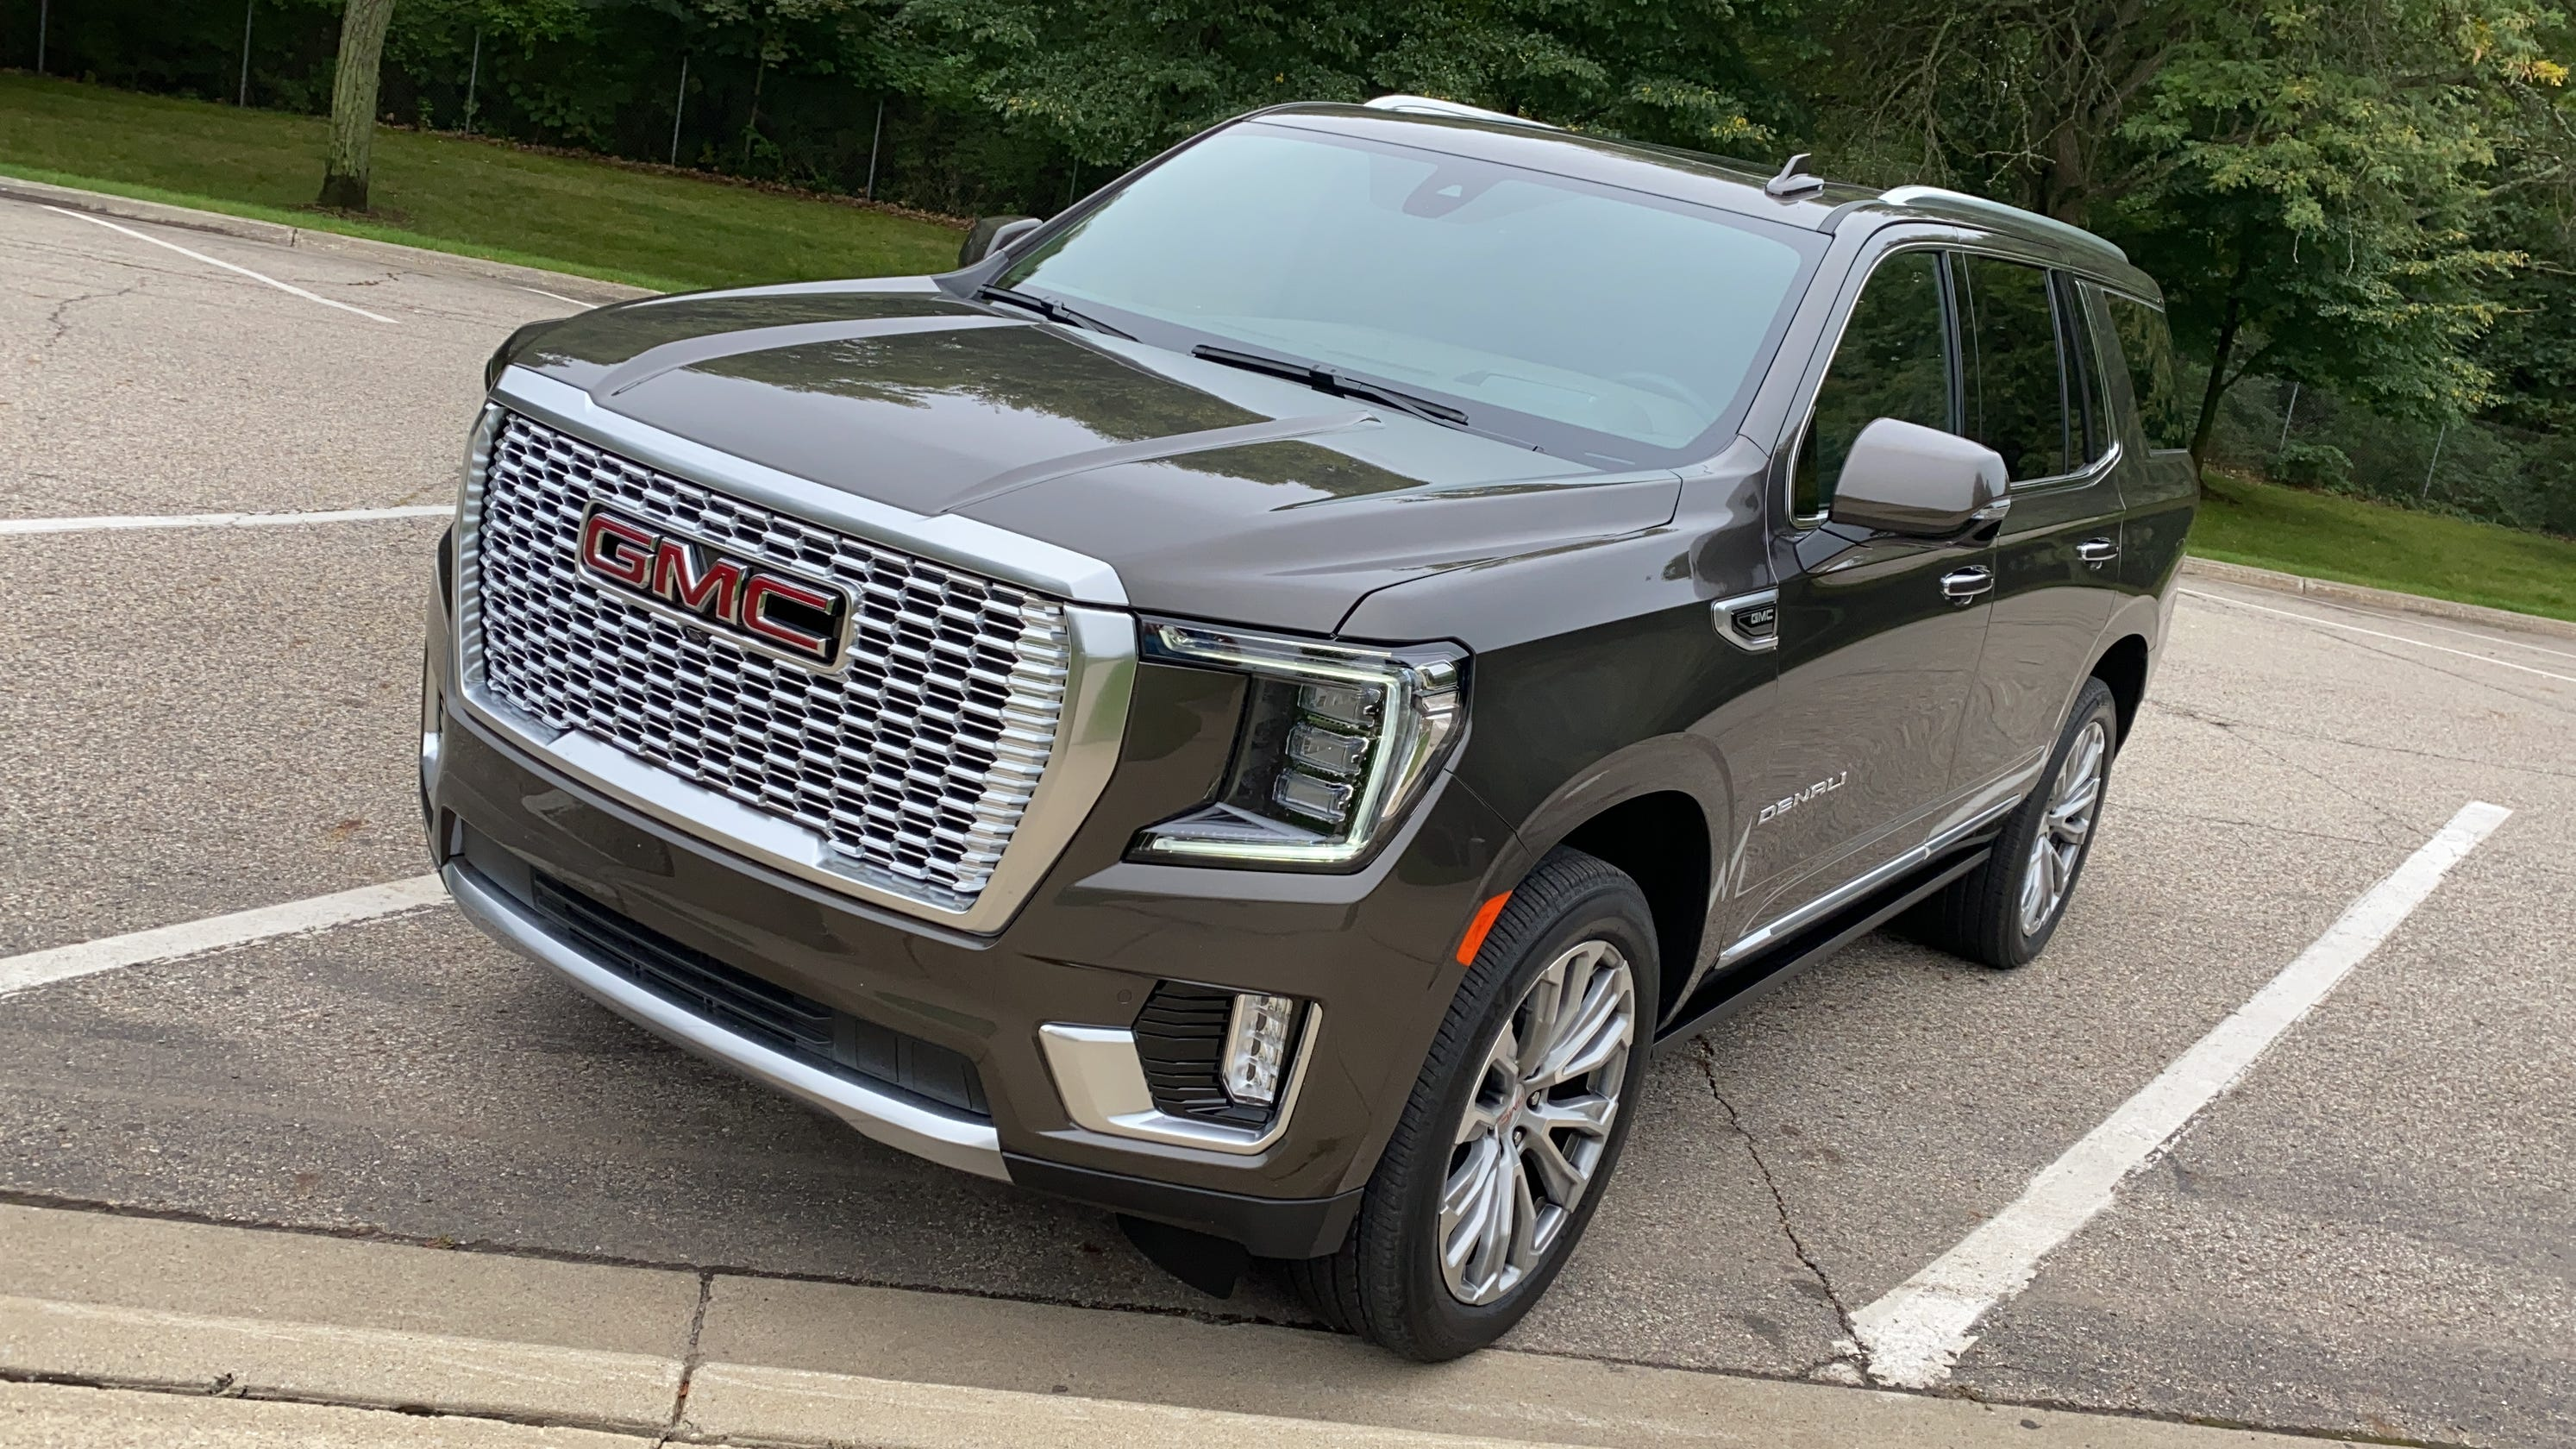 2021 GMC Yukon Denali SUV scales new peaks of luxury